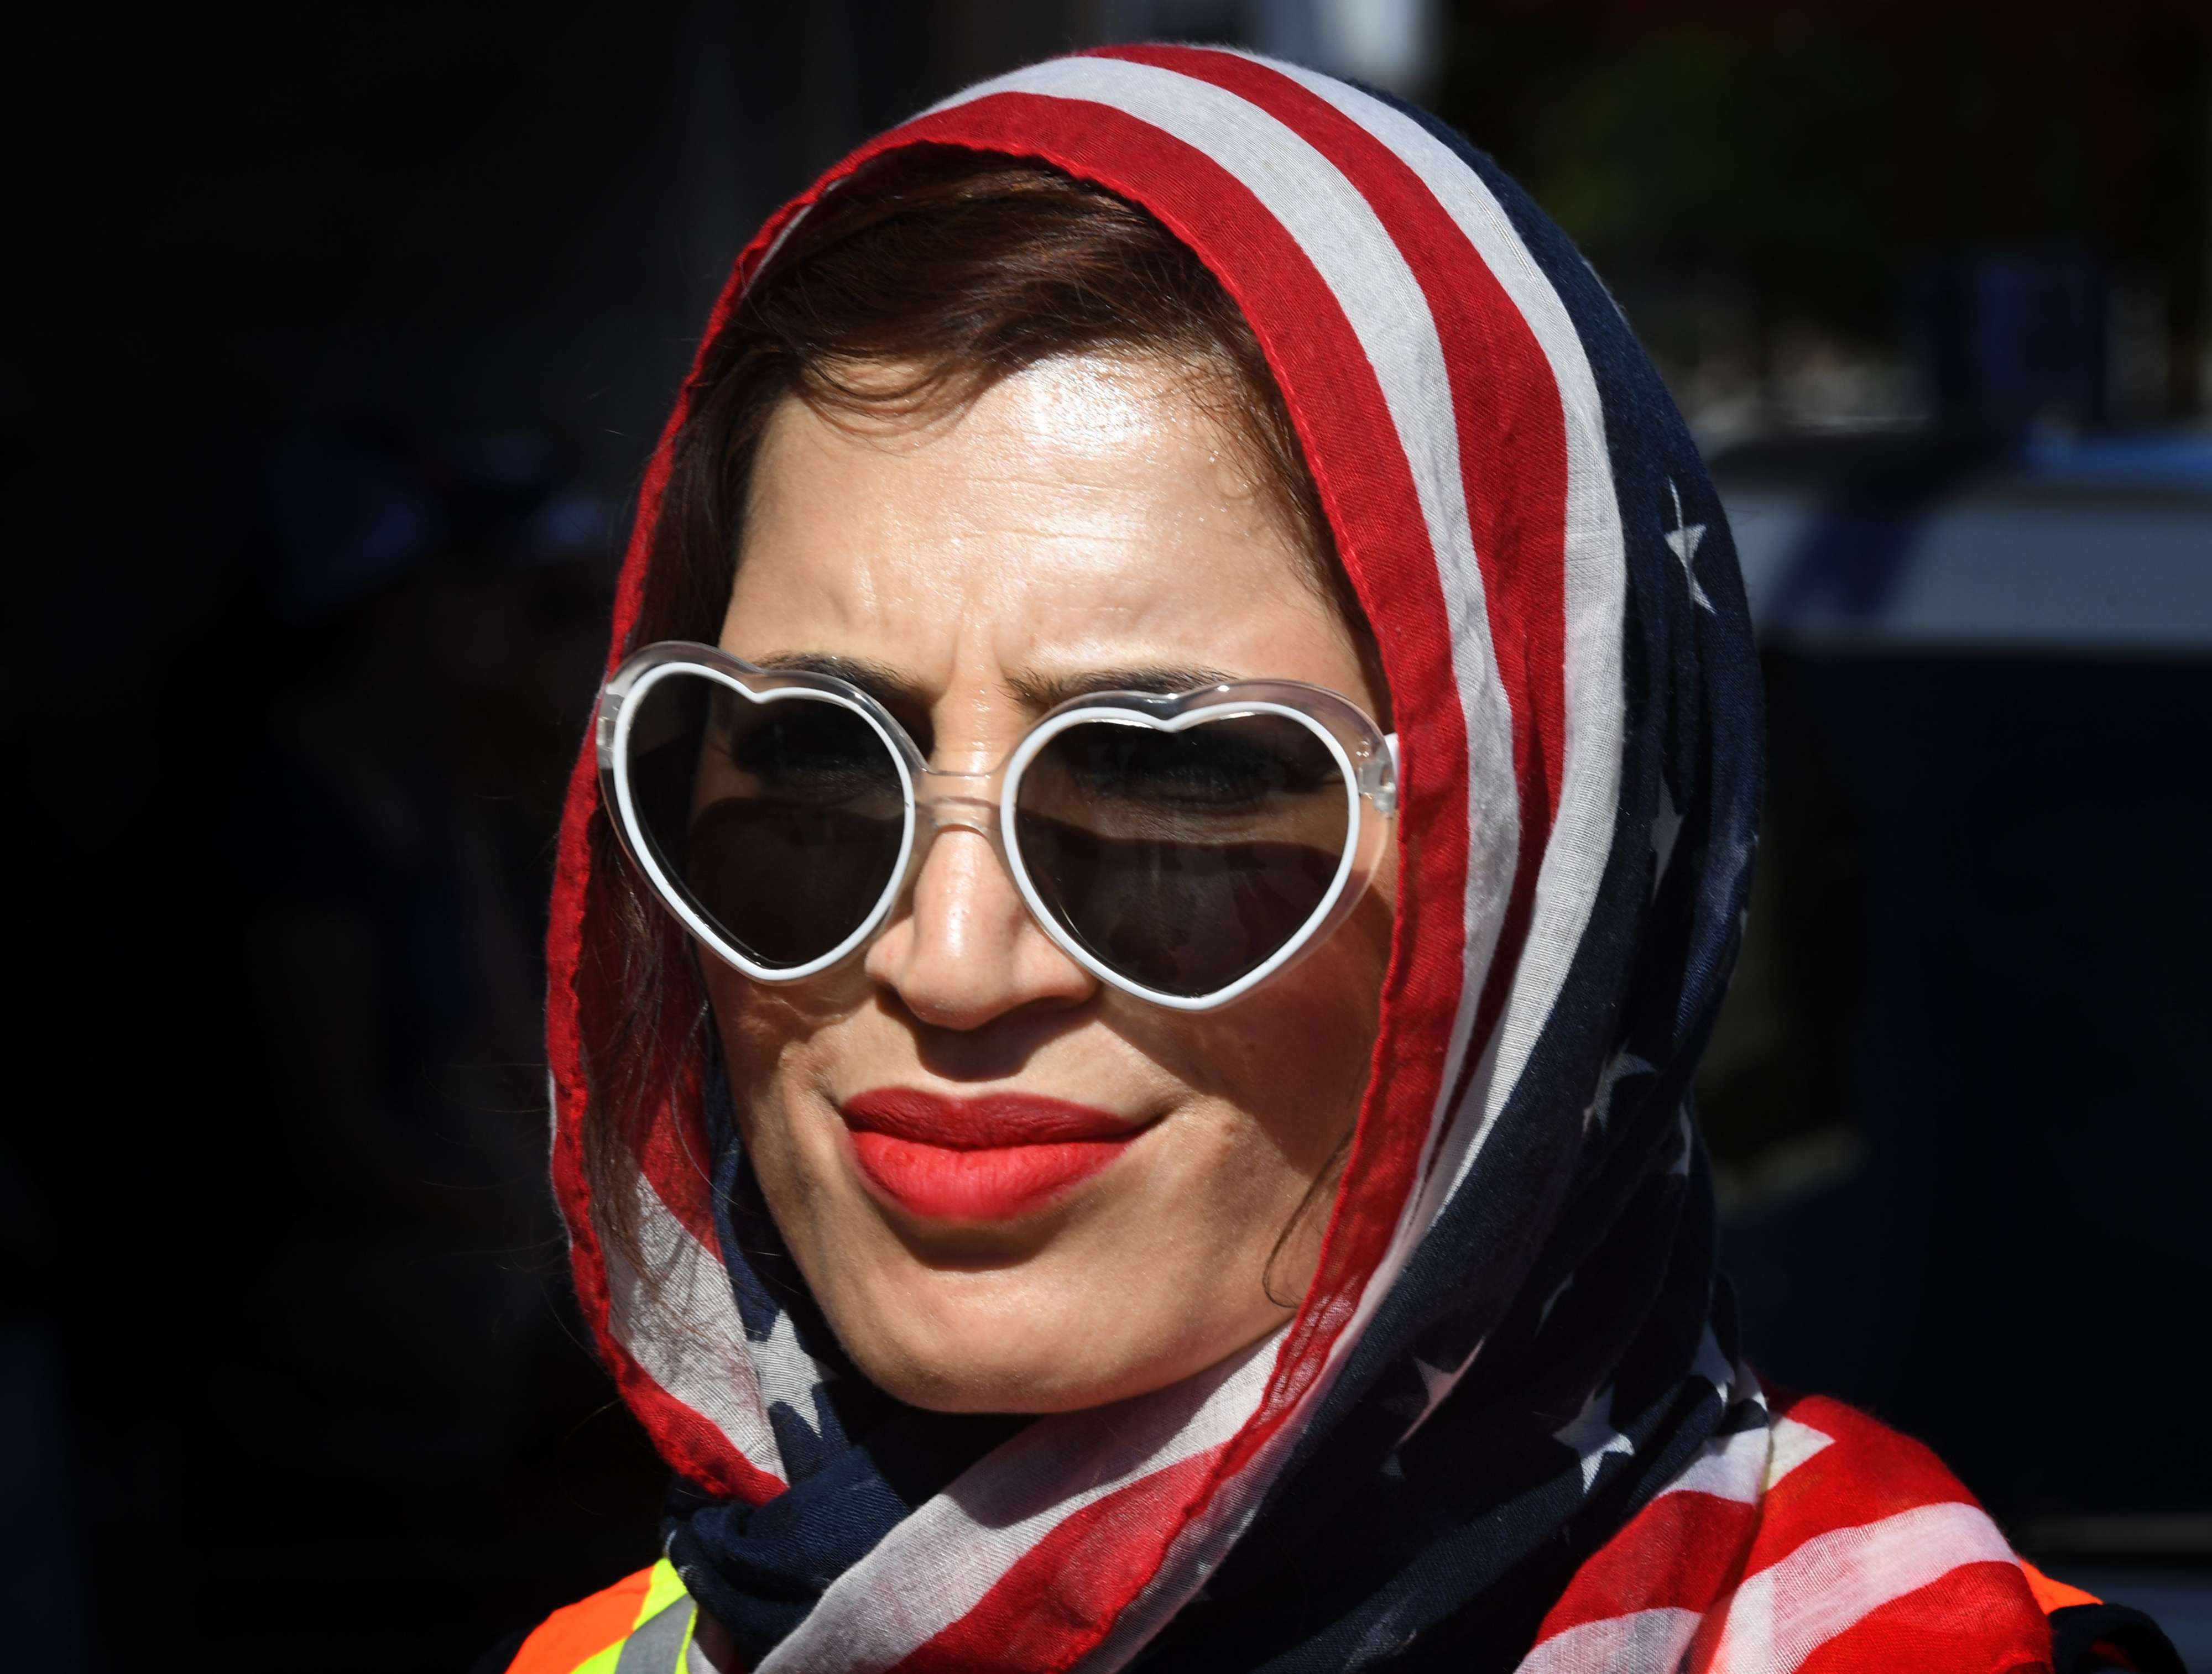 A woman wears an American flag for a headscarf as she participates in the '#NoMuslimBanEver' rally in downtown Los Angeles, California last year. (AFP)